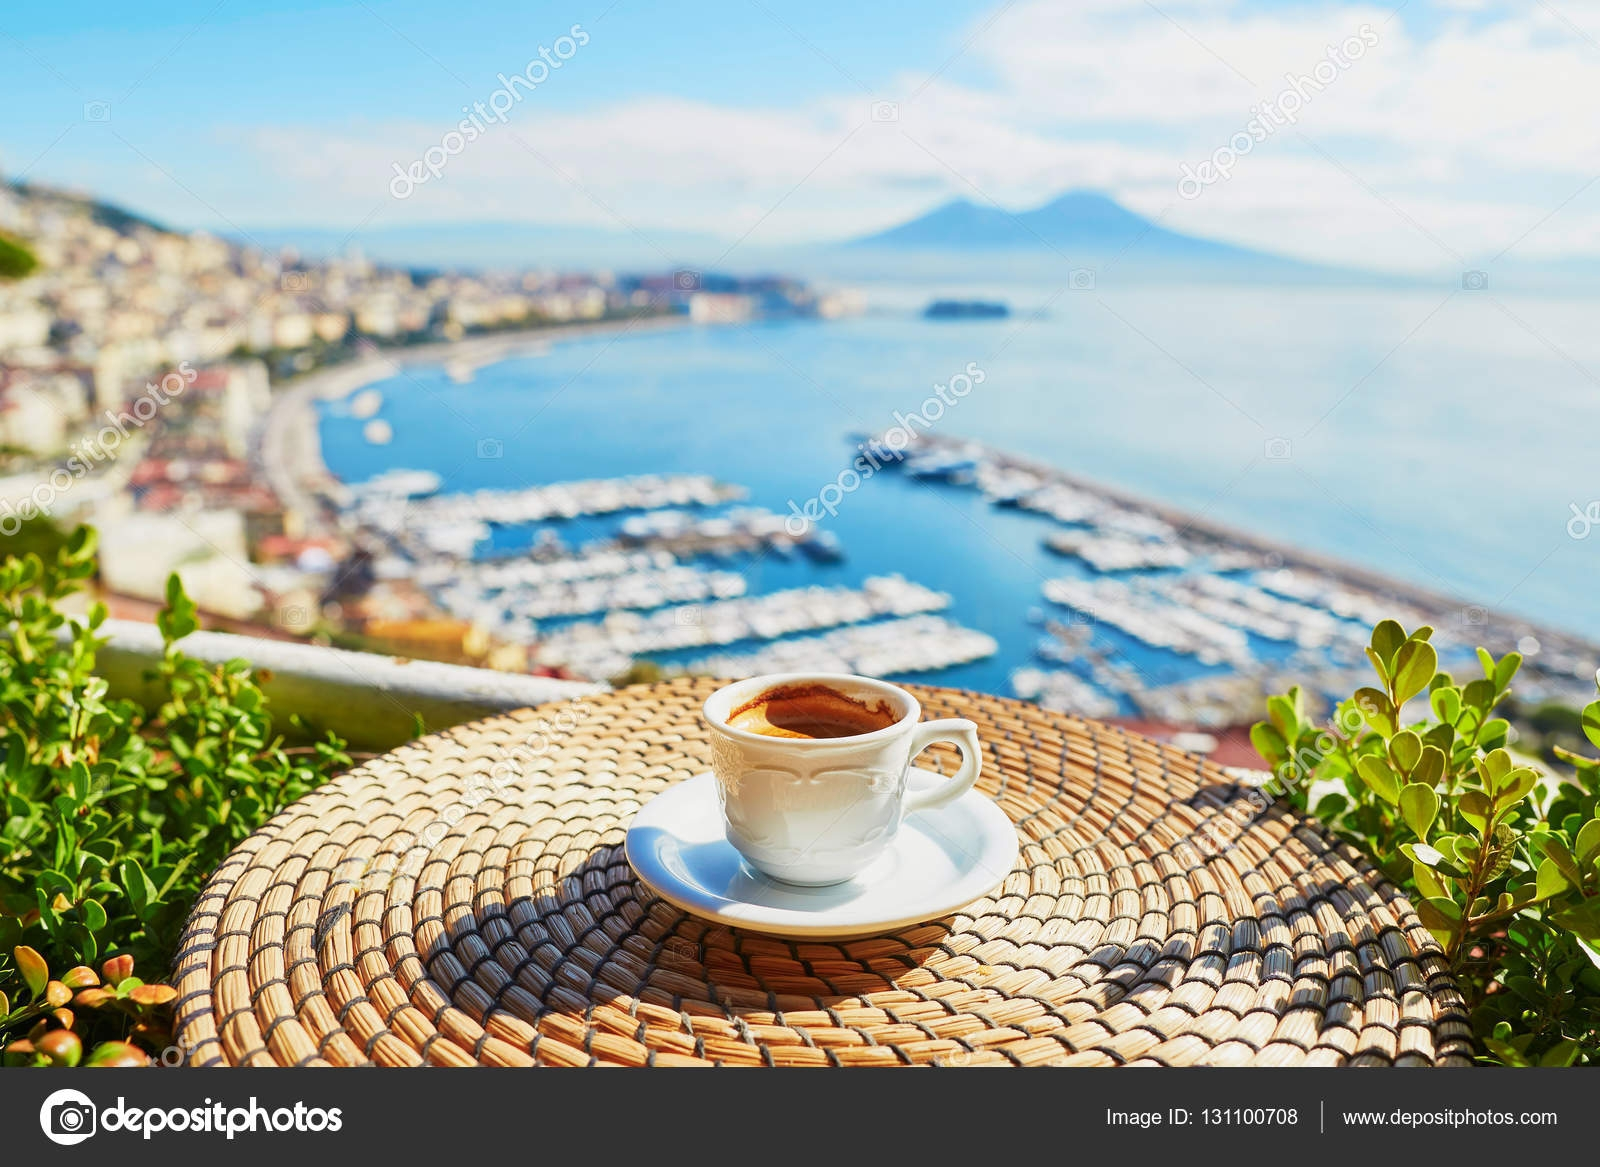 A picture containing table, sky, cup, sitting  Description generated with high confidence